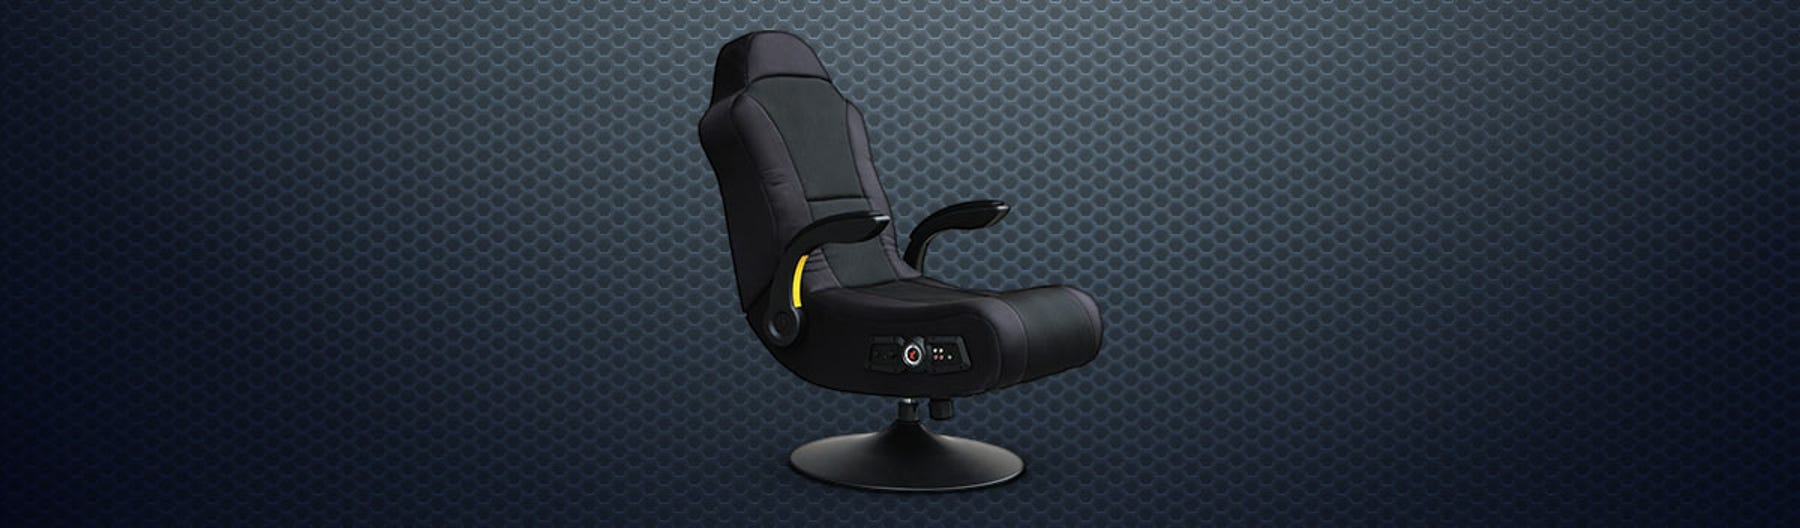 Terrific Gaming Chairs Computer Video Game Chairs Best Buy Canada Creativecarmelina Interior Chair Design Creativecarmelinacom